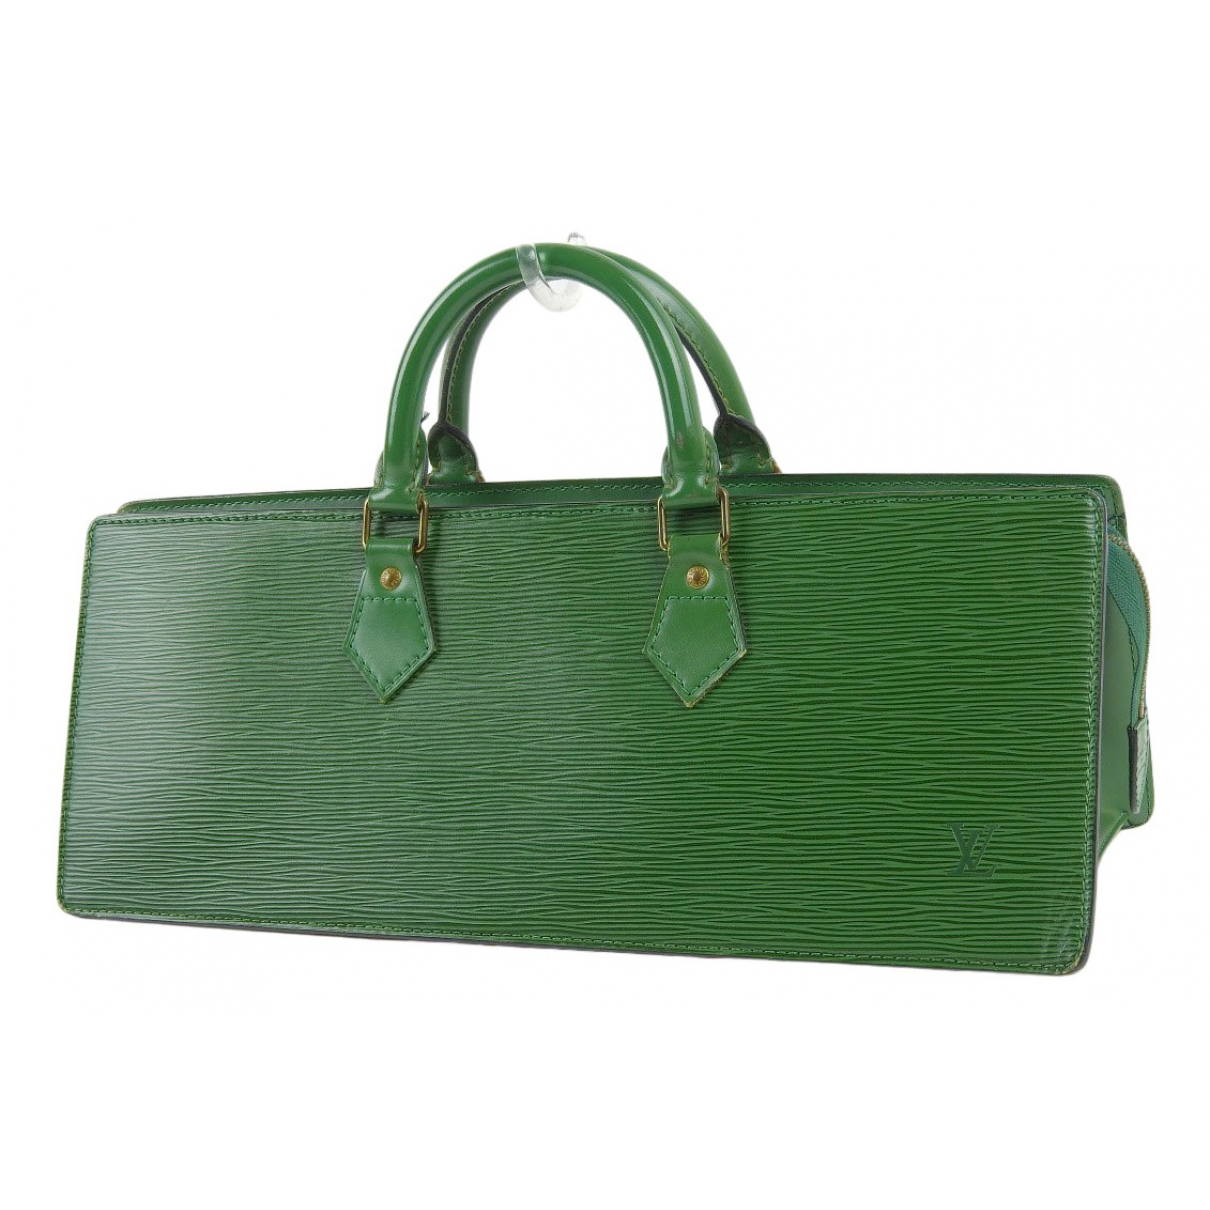 Louis Vuitton Triangle Green Leather handbag for Women \N